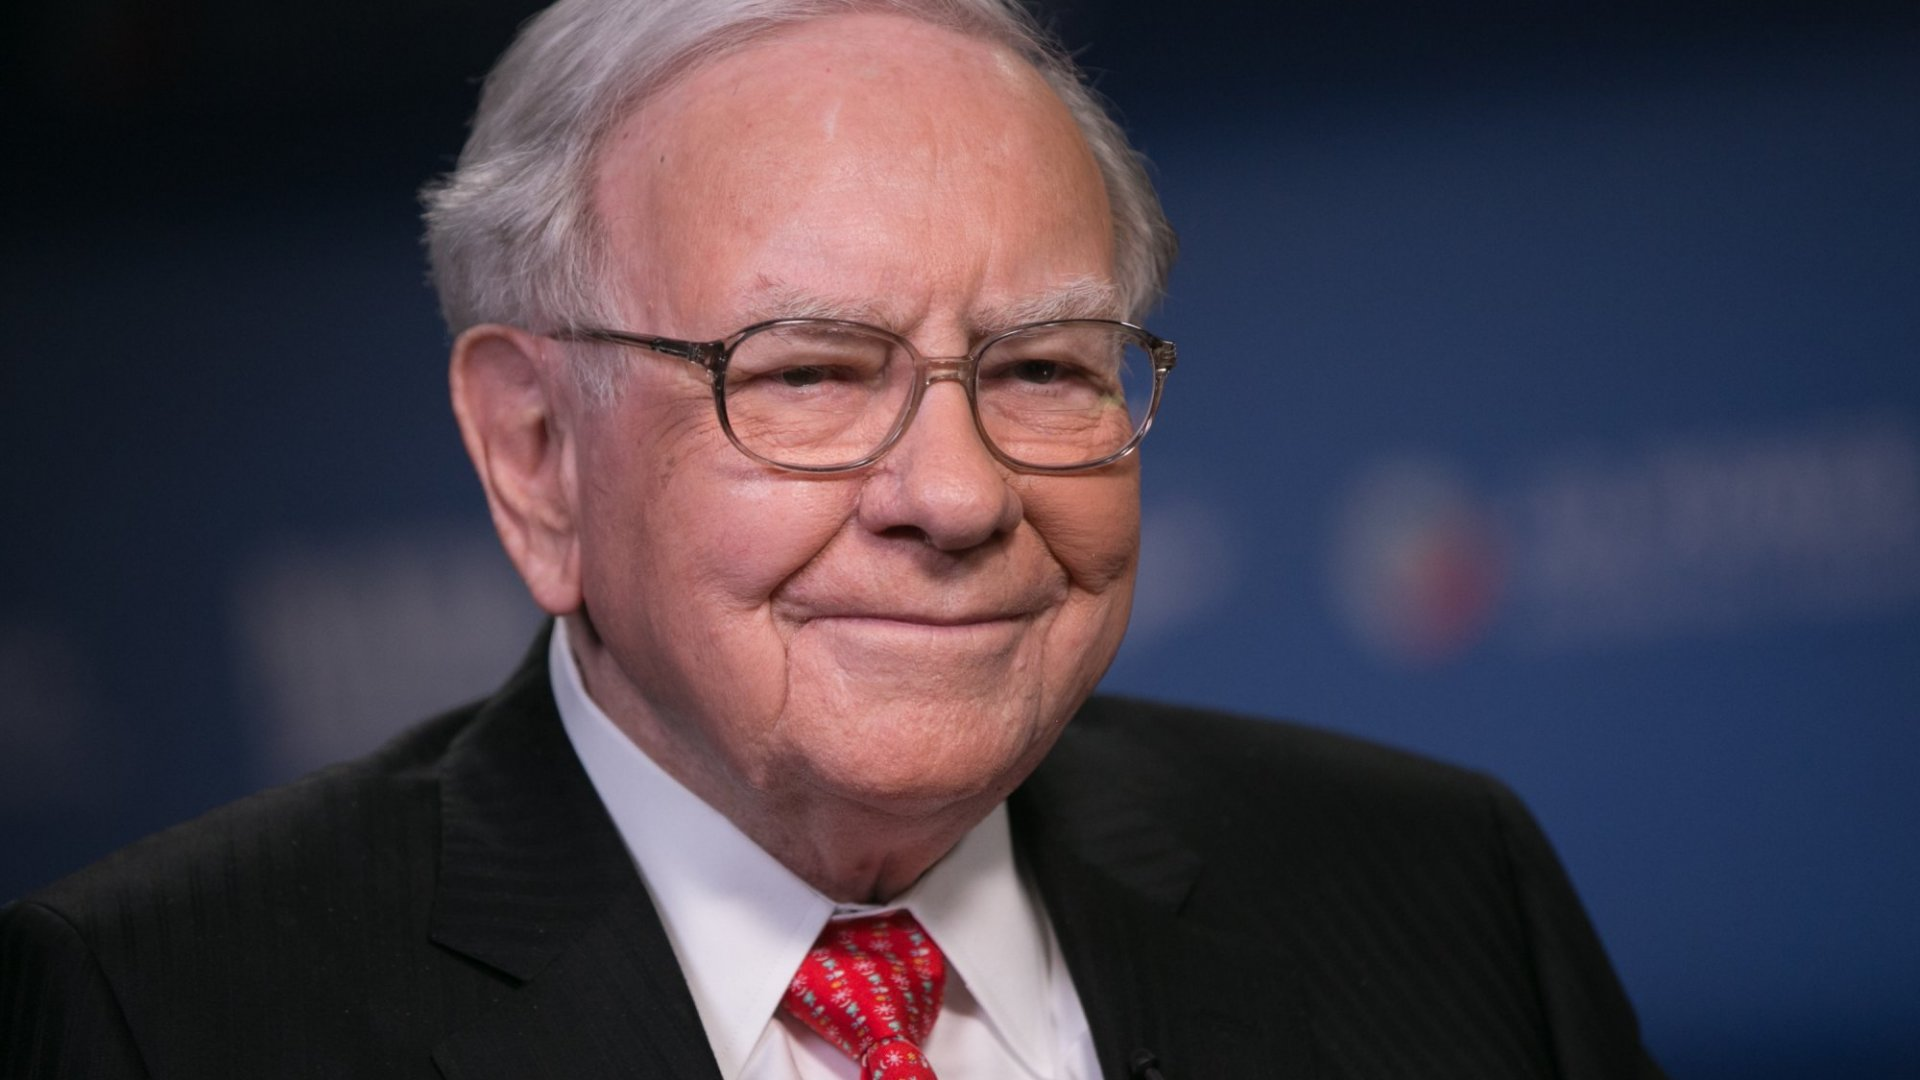 Warren Buffett's Berkshire Hathaway Finally Bought a Stake in Amazon